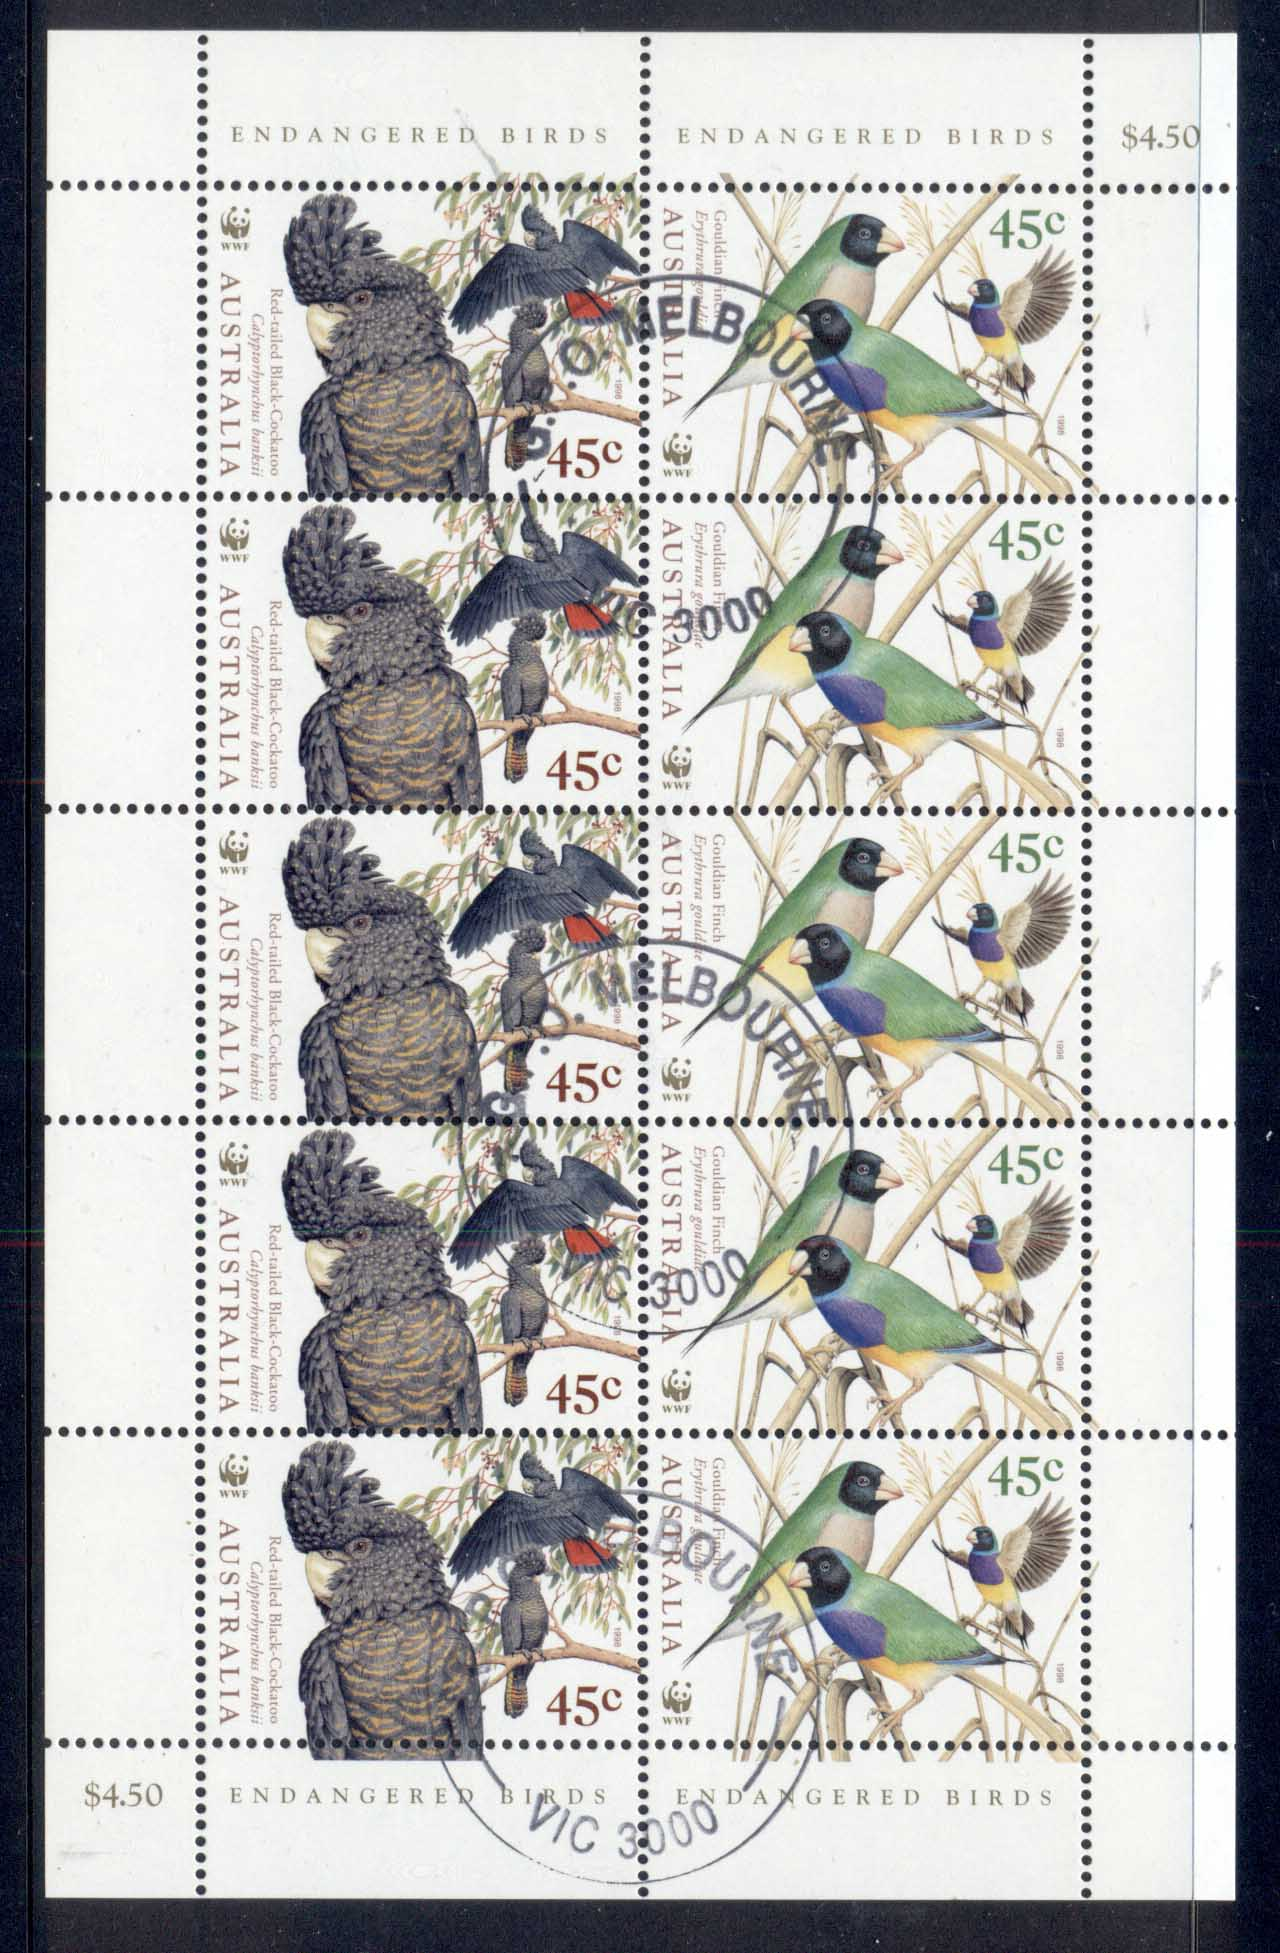 Australia 1998 Endangered Birds 45c Sheetlet CTO